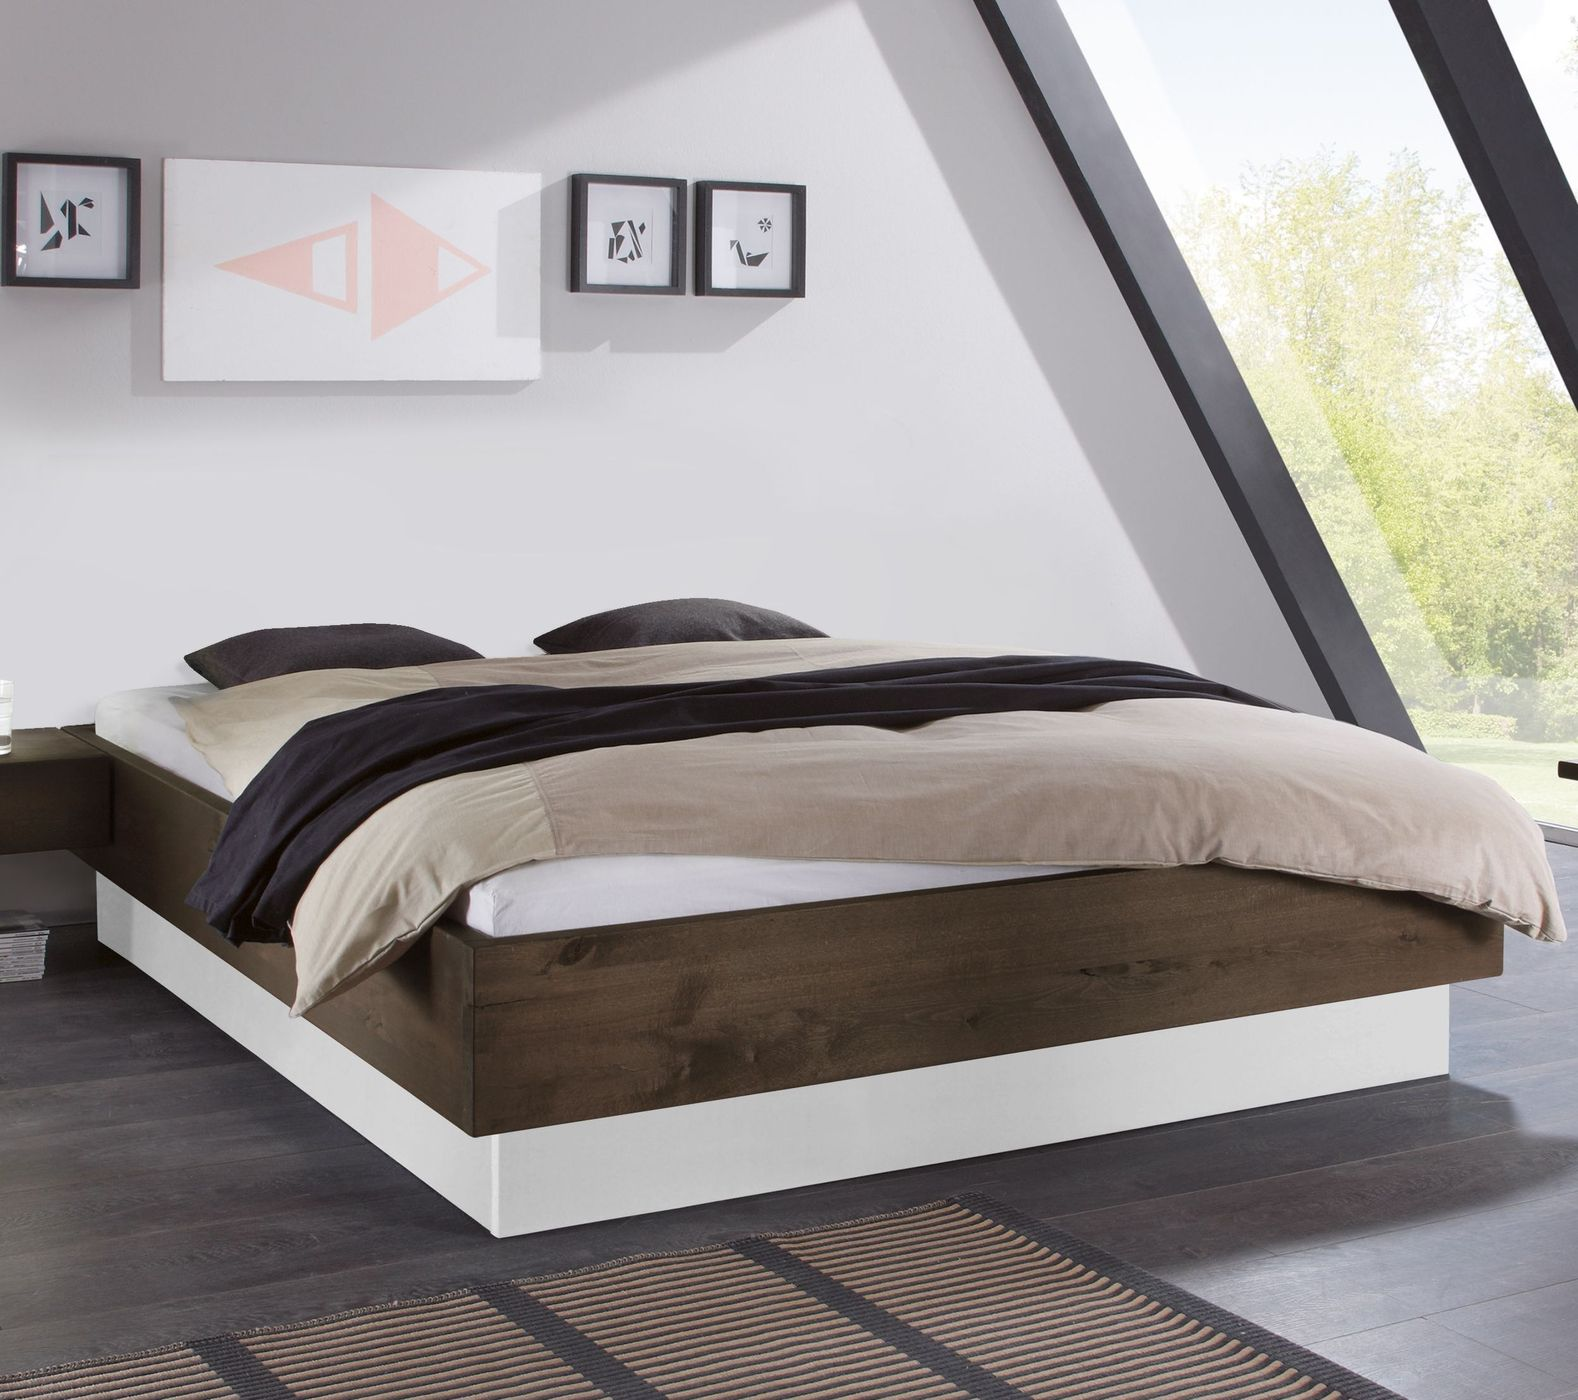 stauraum liege aus wildbuchenholz inklusive lattenrost patea. Black Bedroom Furniture Sets. Home Design Ideas